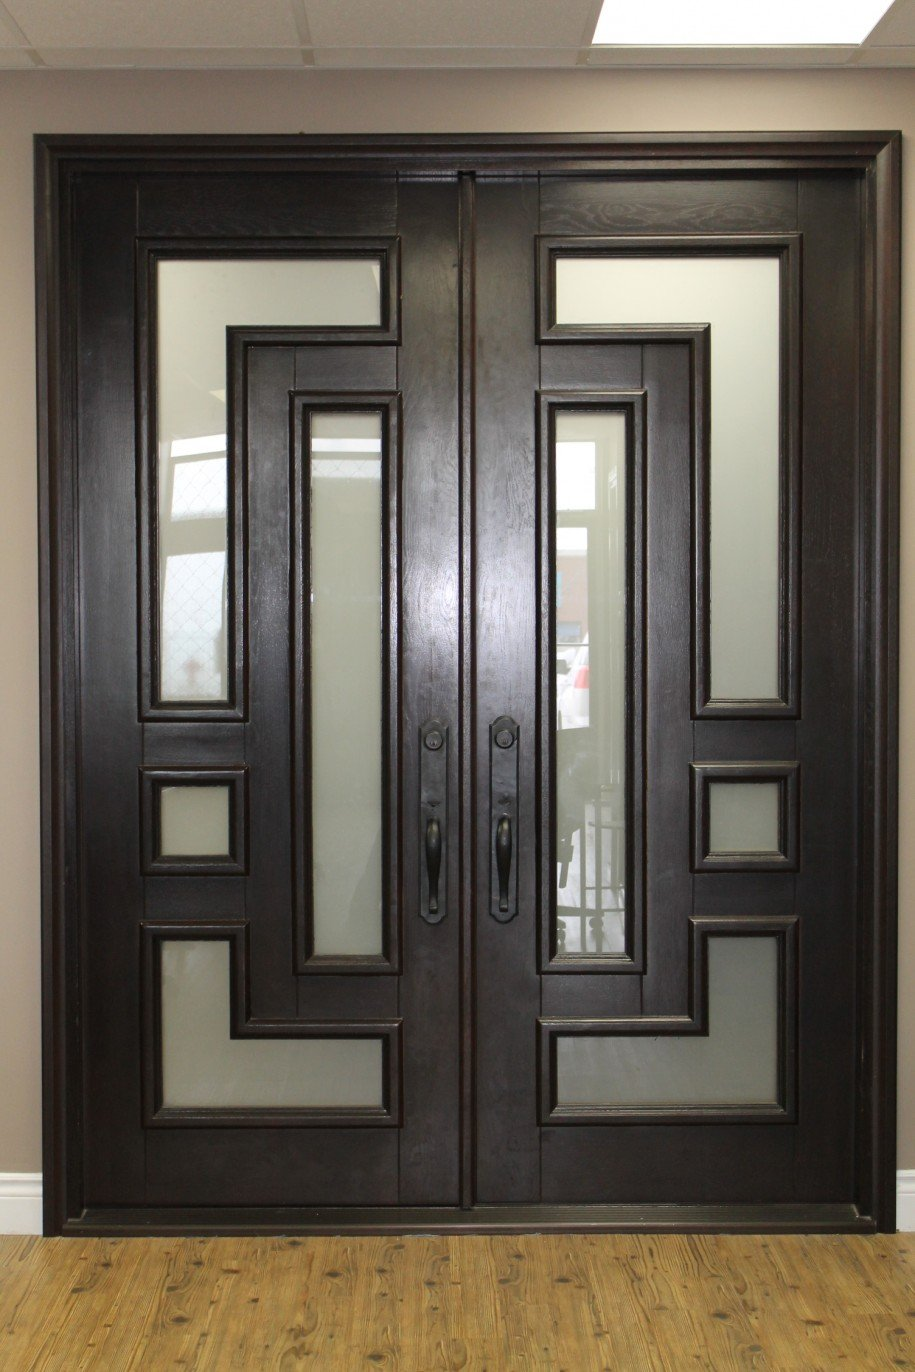 Federal 61.5x81 Eyebrow Arch Iron Door